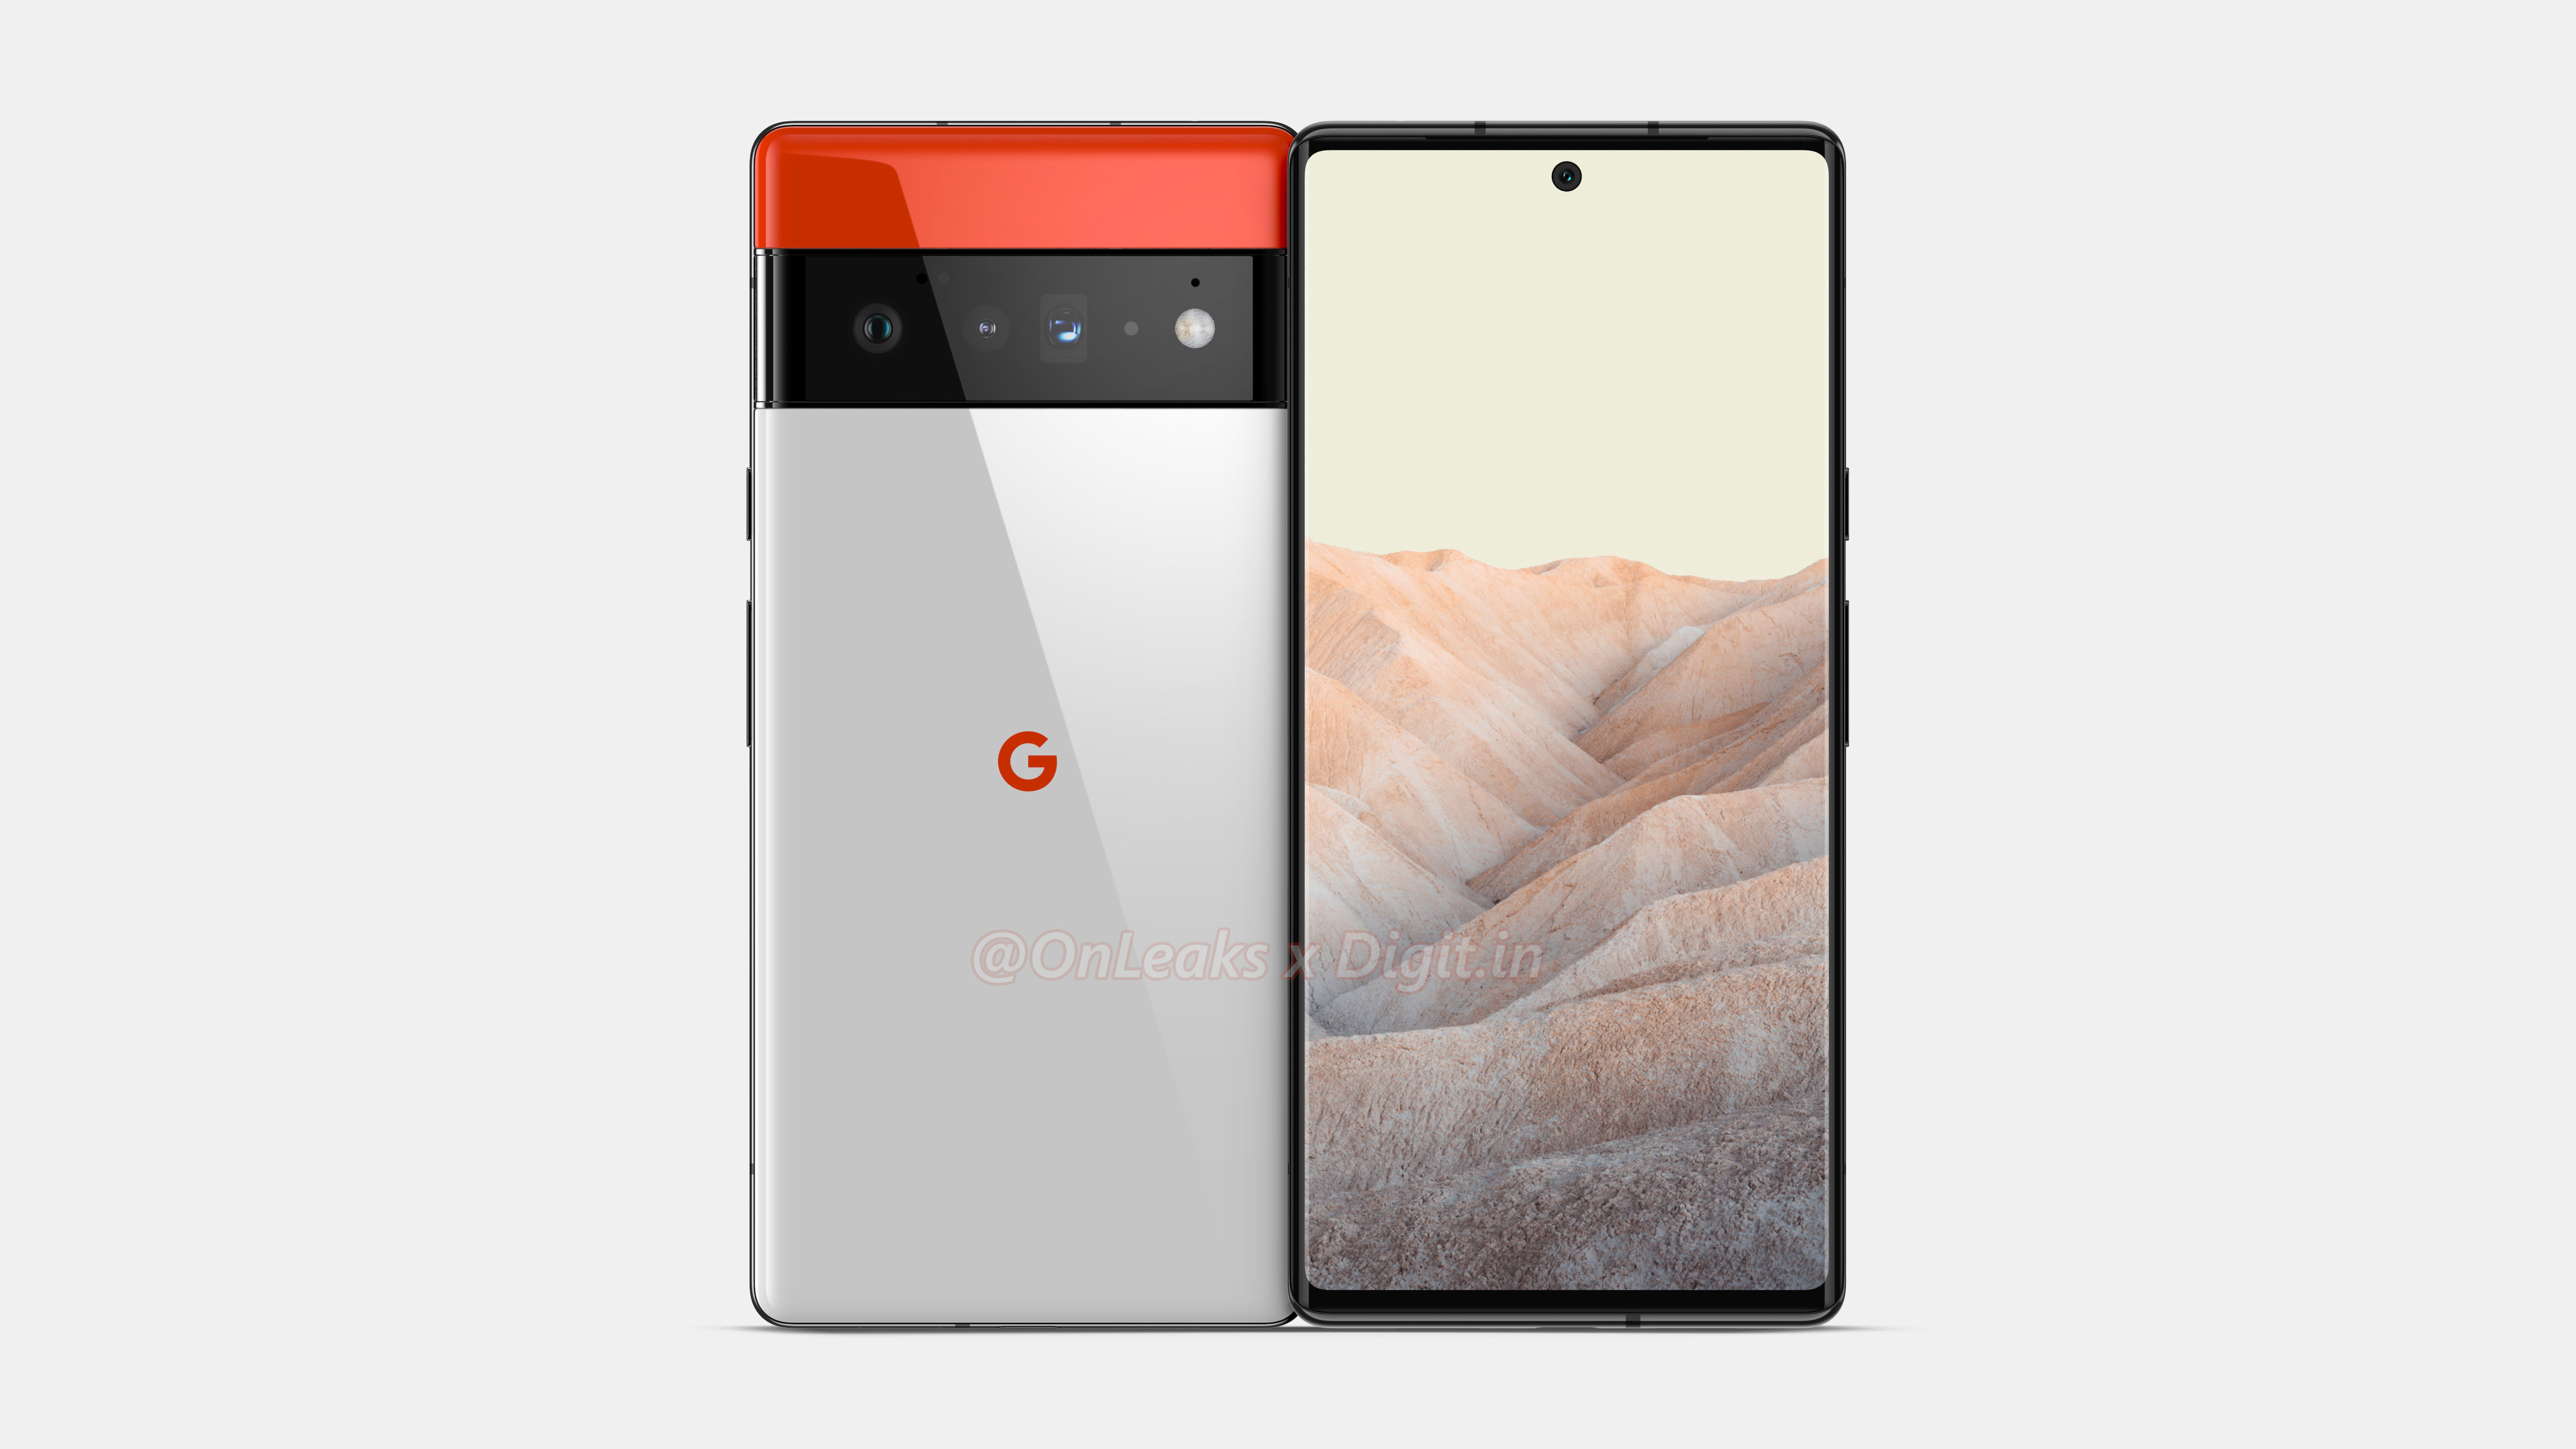 Front and back looks at the Google Pixel 6 Pro